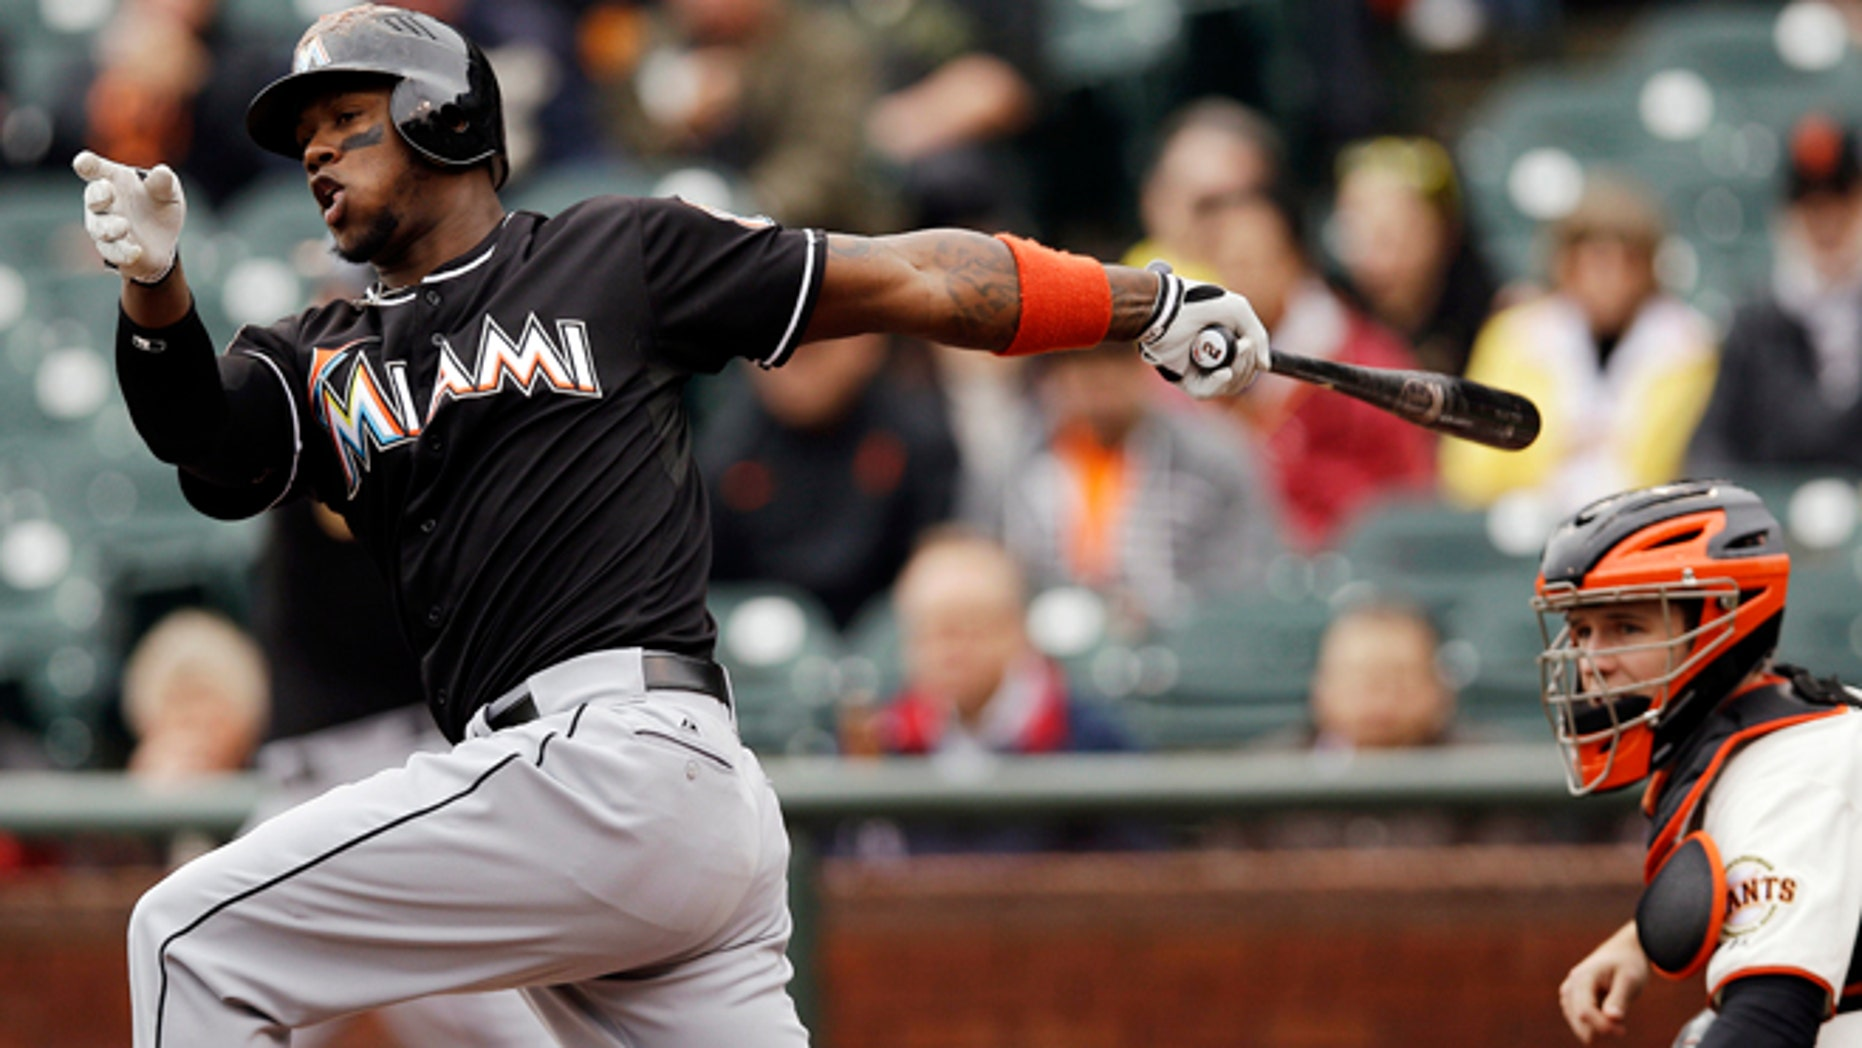 May 3, 2012:  Miami Marlins' Hanley Ramirez grounding out and driving in a run,  on a fielder's choice against the San Francisco Giants during the first inning of a baseball game in San Francisco. (AP Photo/Marcio Jose Sanchez)